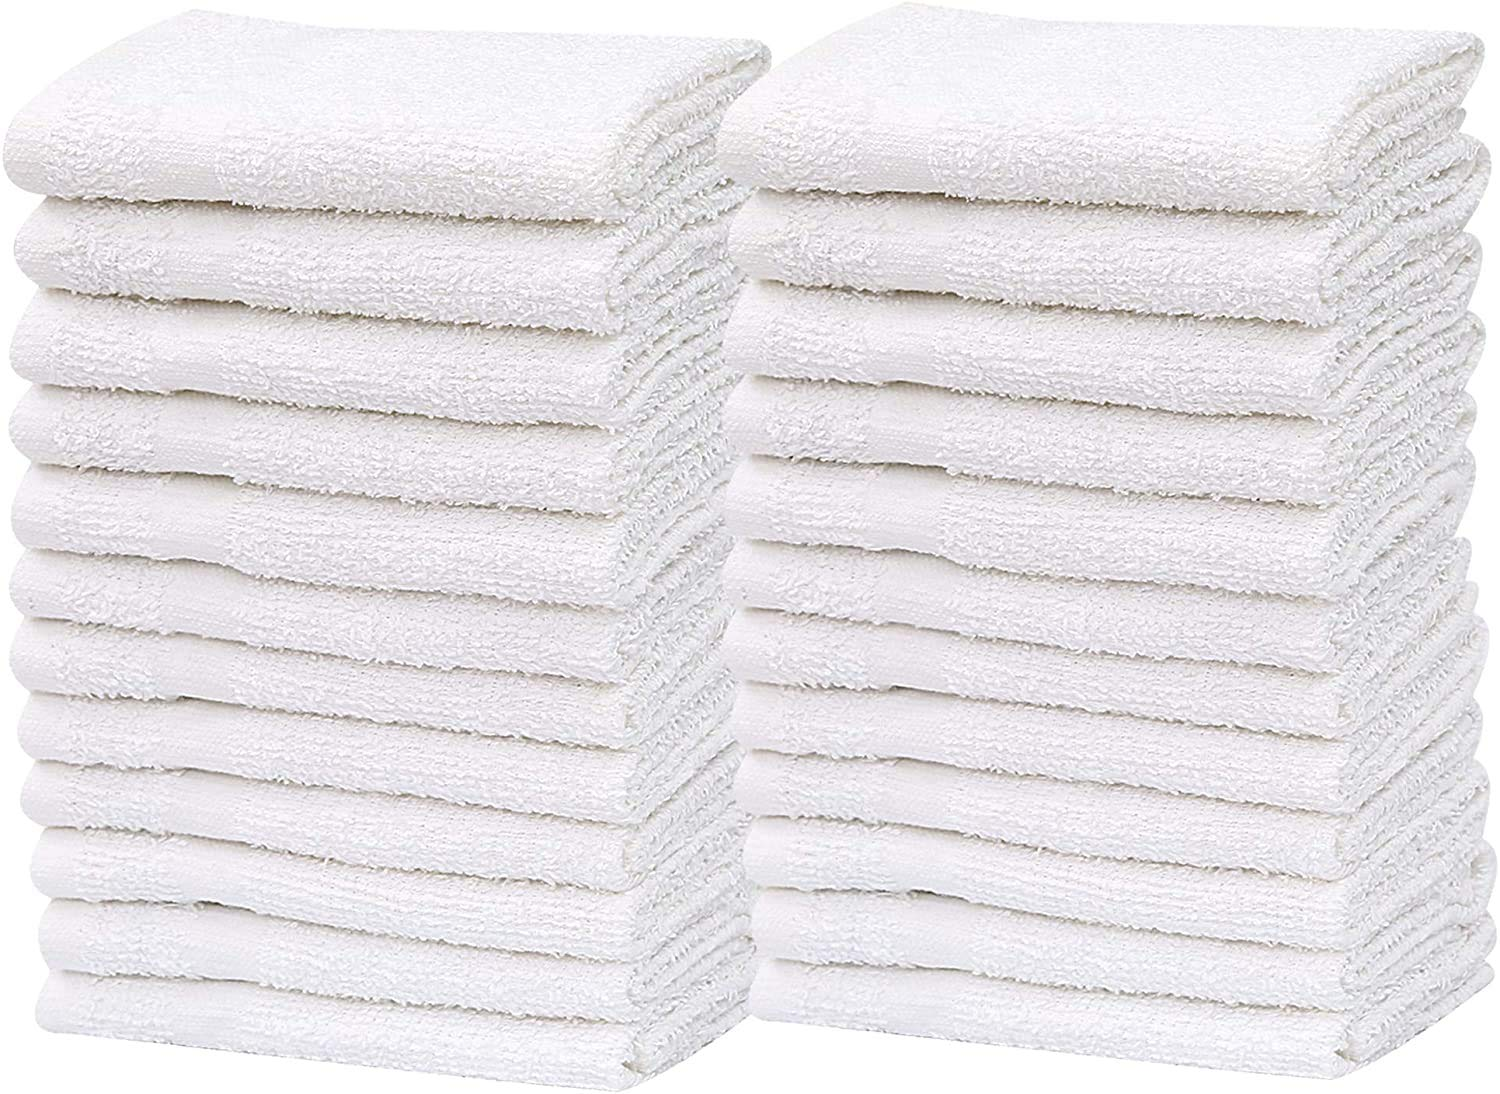 """GOLD TEXTILES Wash Cloth Kitchen Towels,100% Natural Cotton, (12""""x12"""") Hand Towels, Commercial Grade Washcloth, Machine Washable Cleaning Rags, Wash Cloths for Bathroom bu (60, White)"""